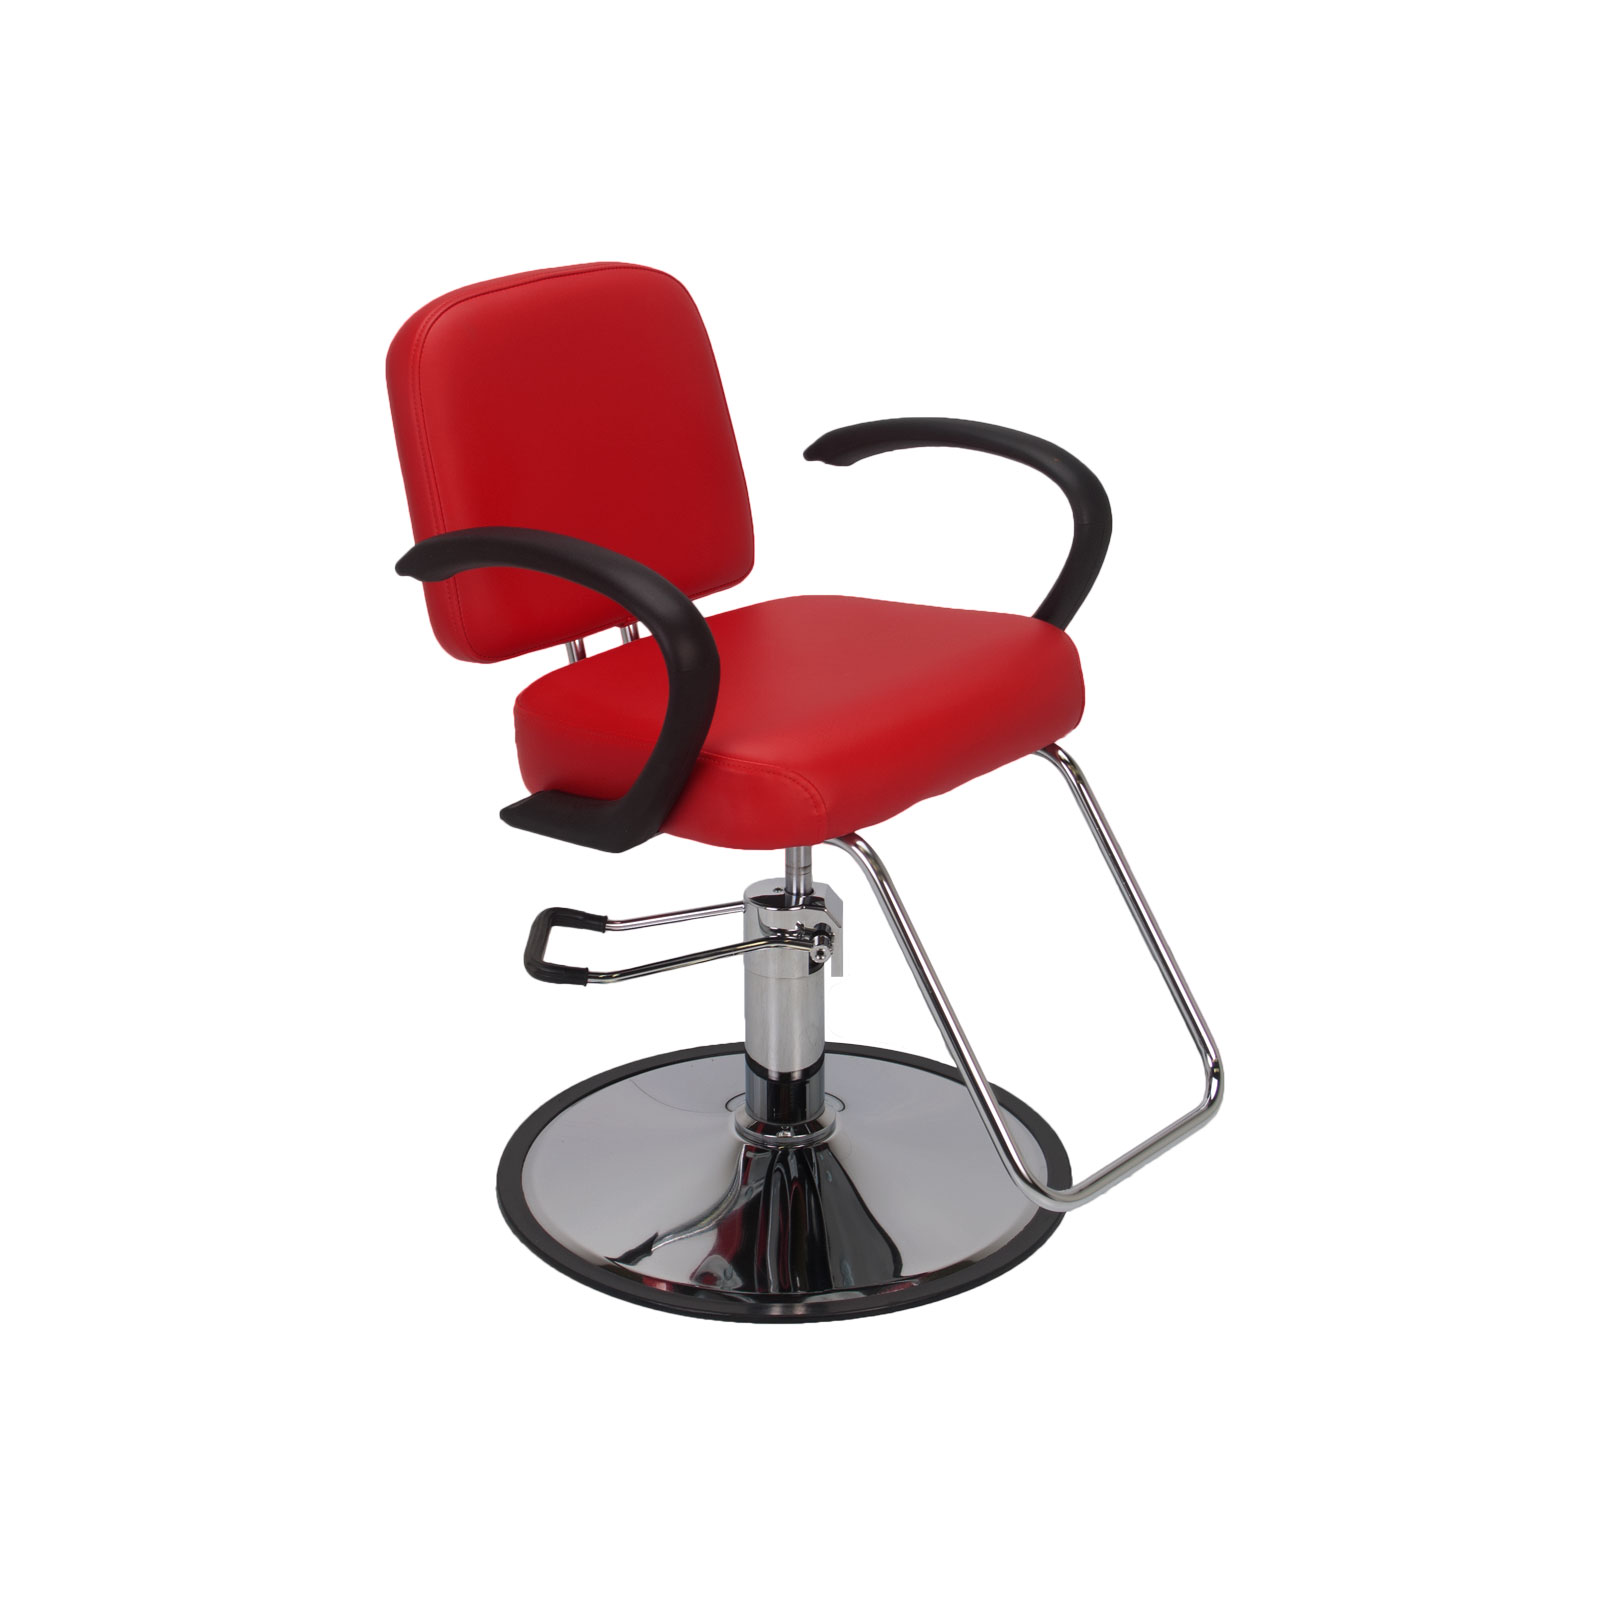 Salon Shampoo Chairs Salon Chair Red Formdecor